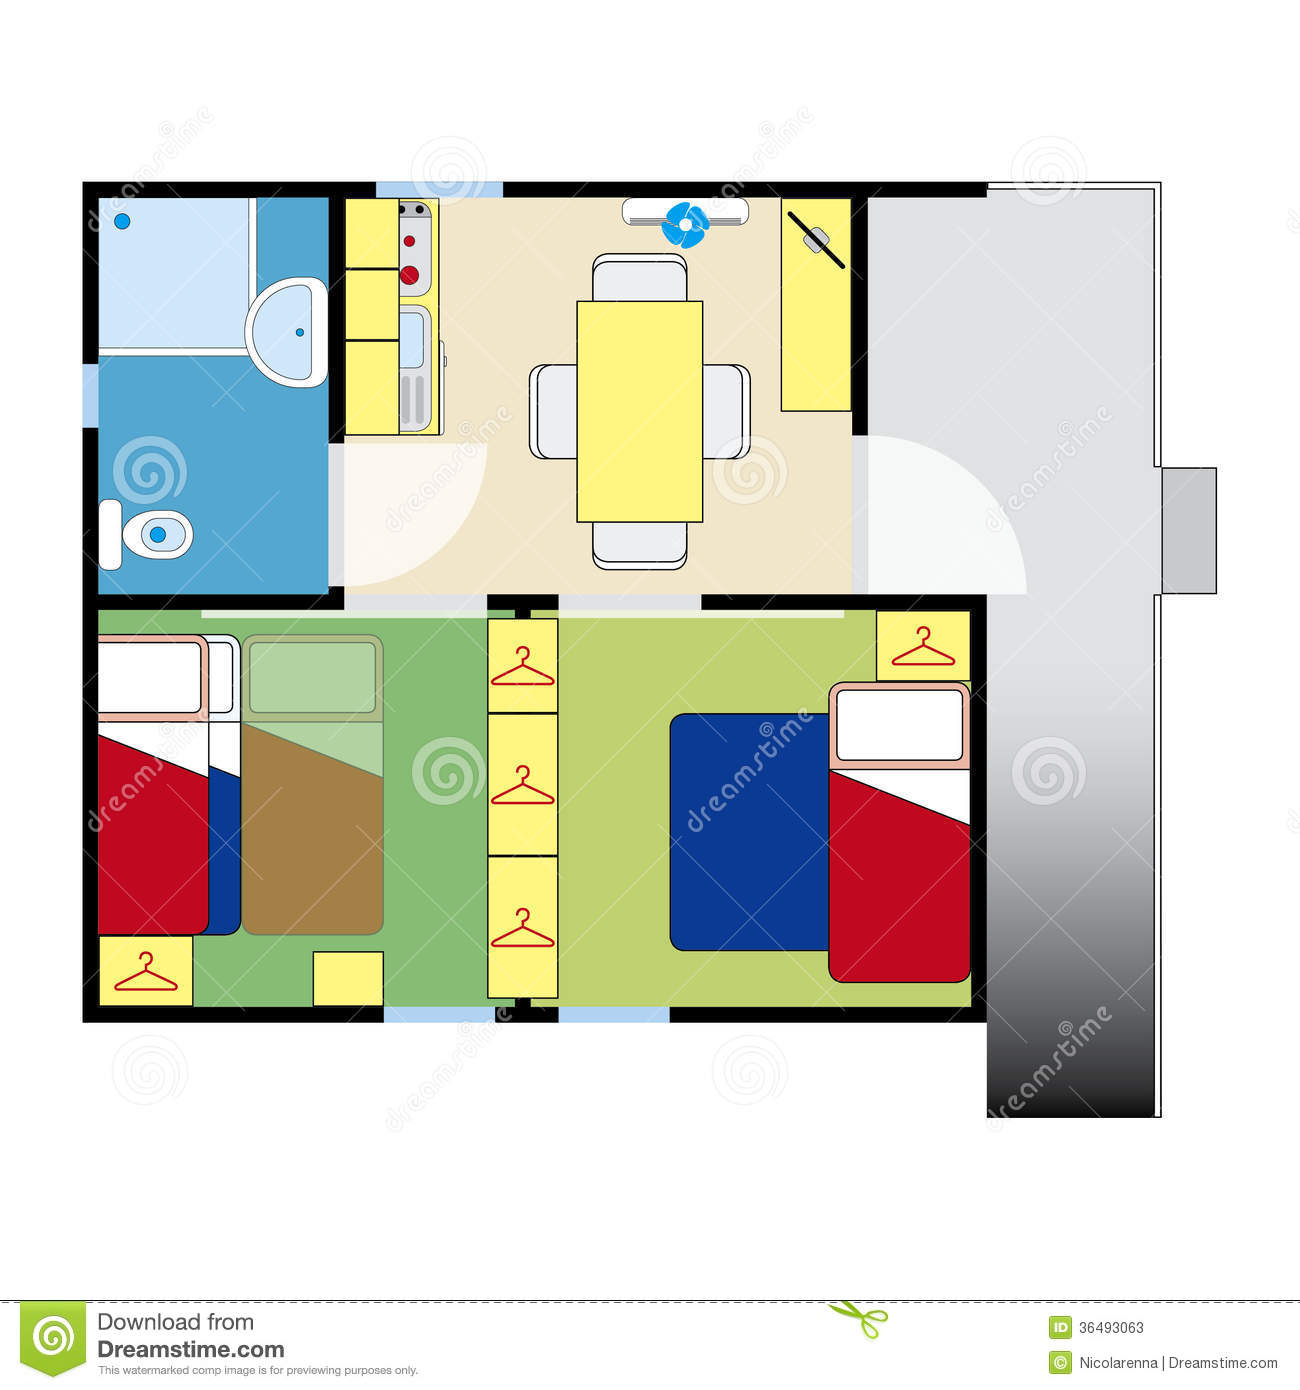 Apartment plan stock photos image 36493063 for Apartment stock plans